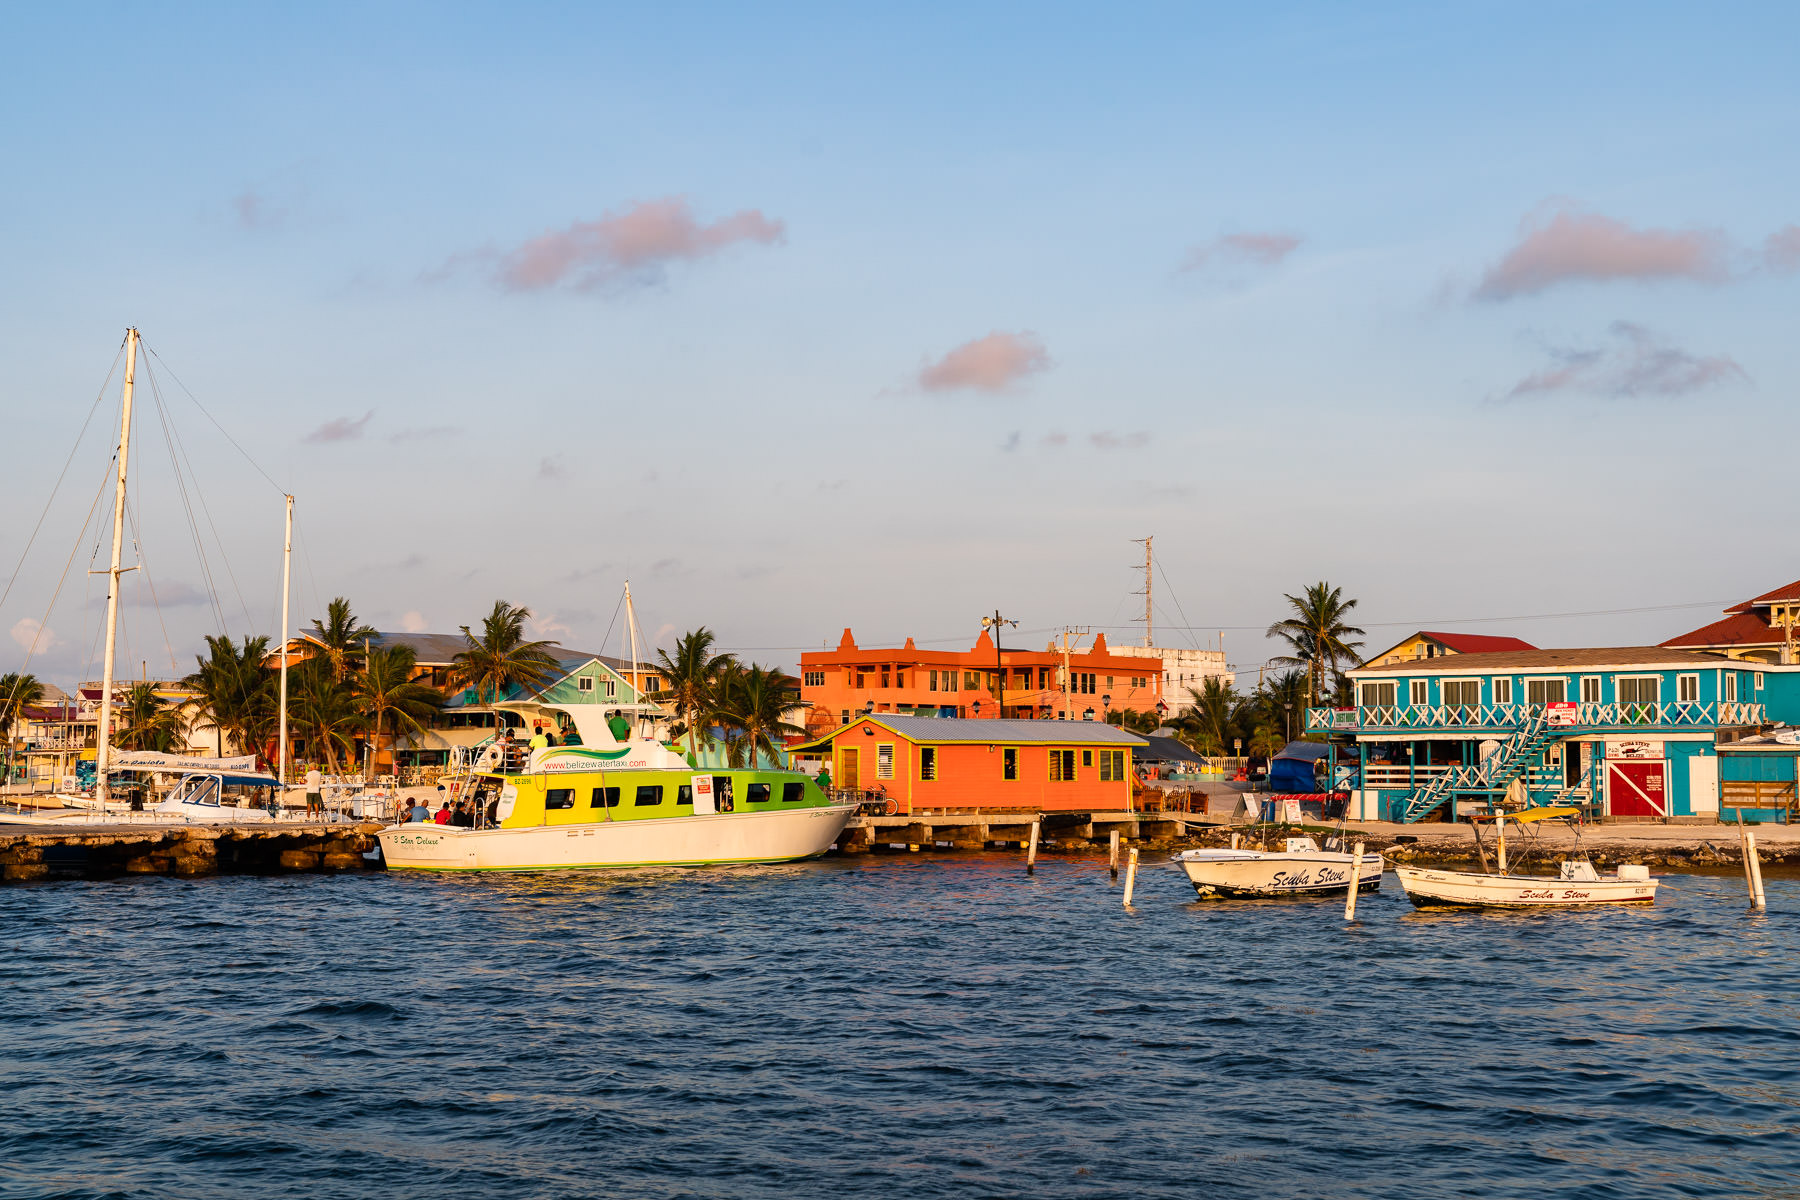 2018.04.30 Ambergris Caye San Pedro Belize © Jennifer Carr Photography Virginia Beach-3.jpg